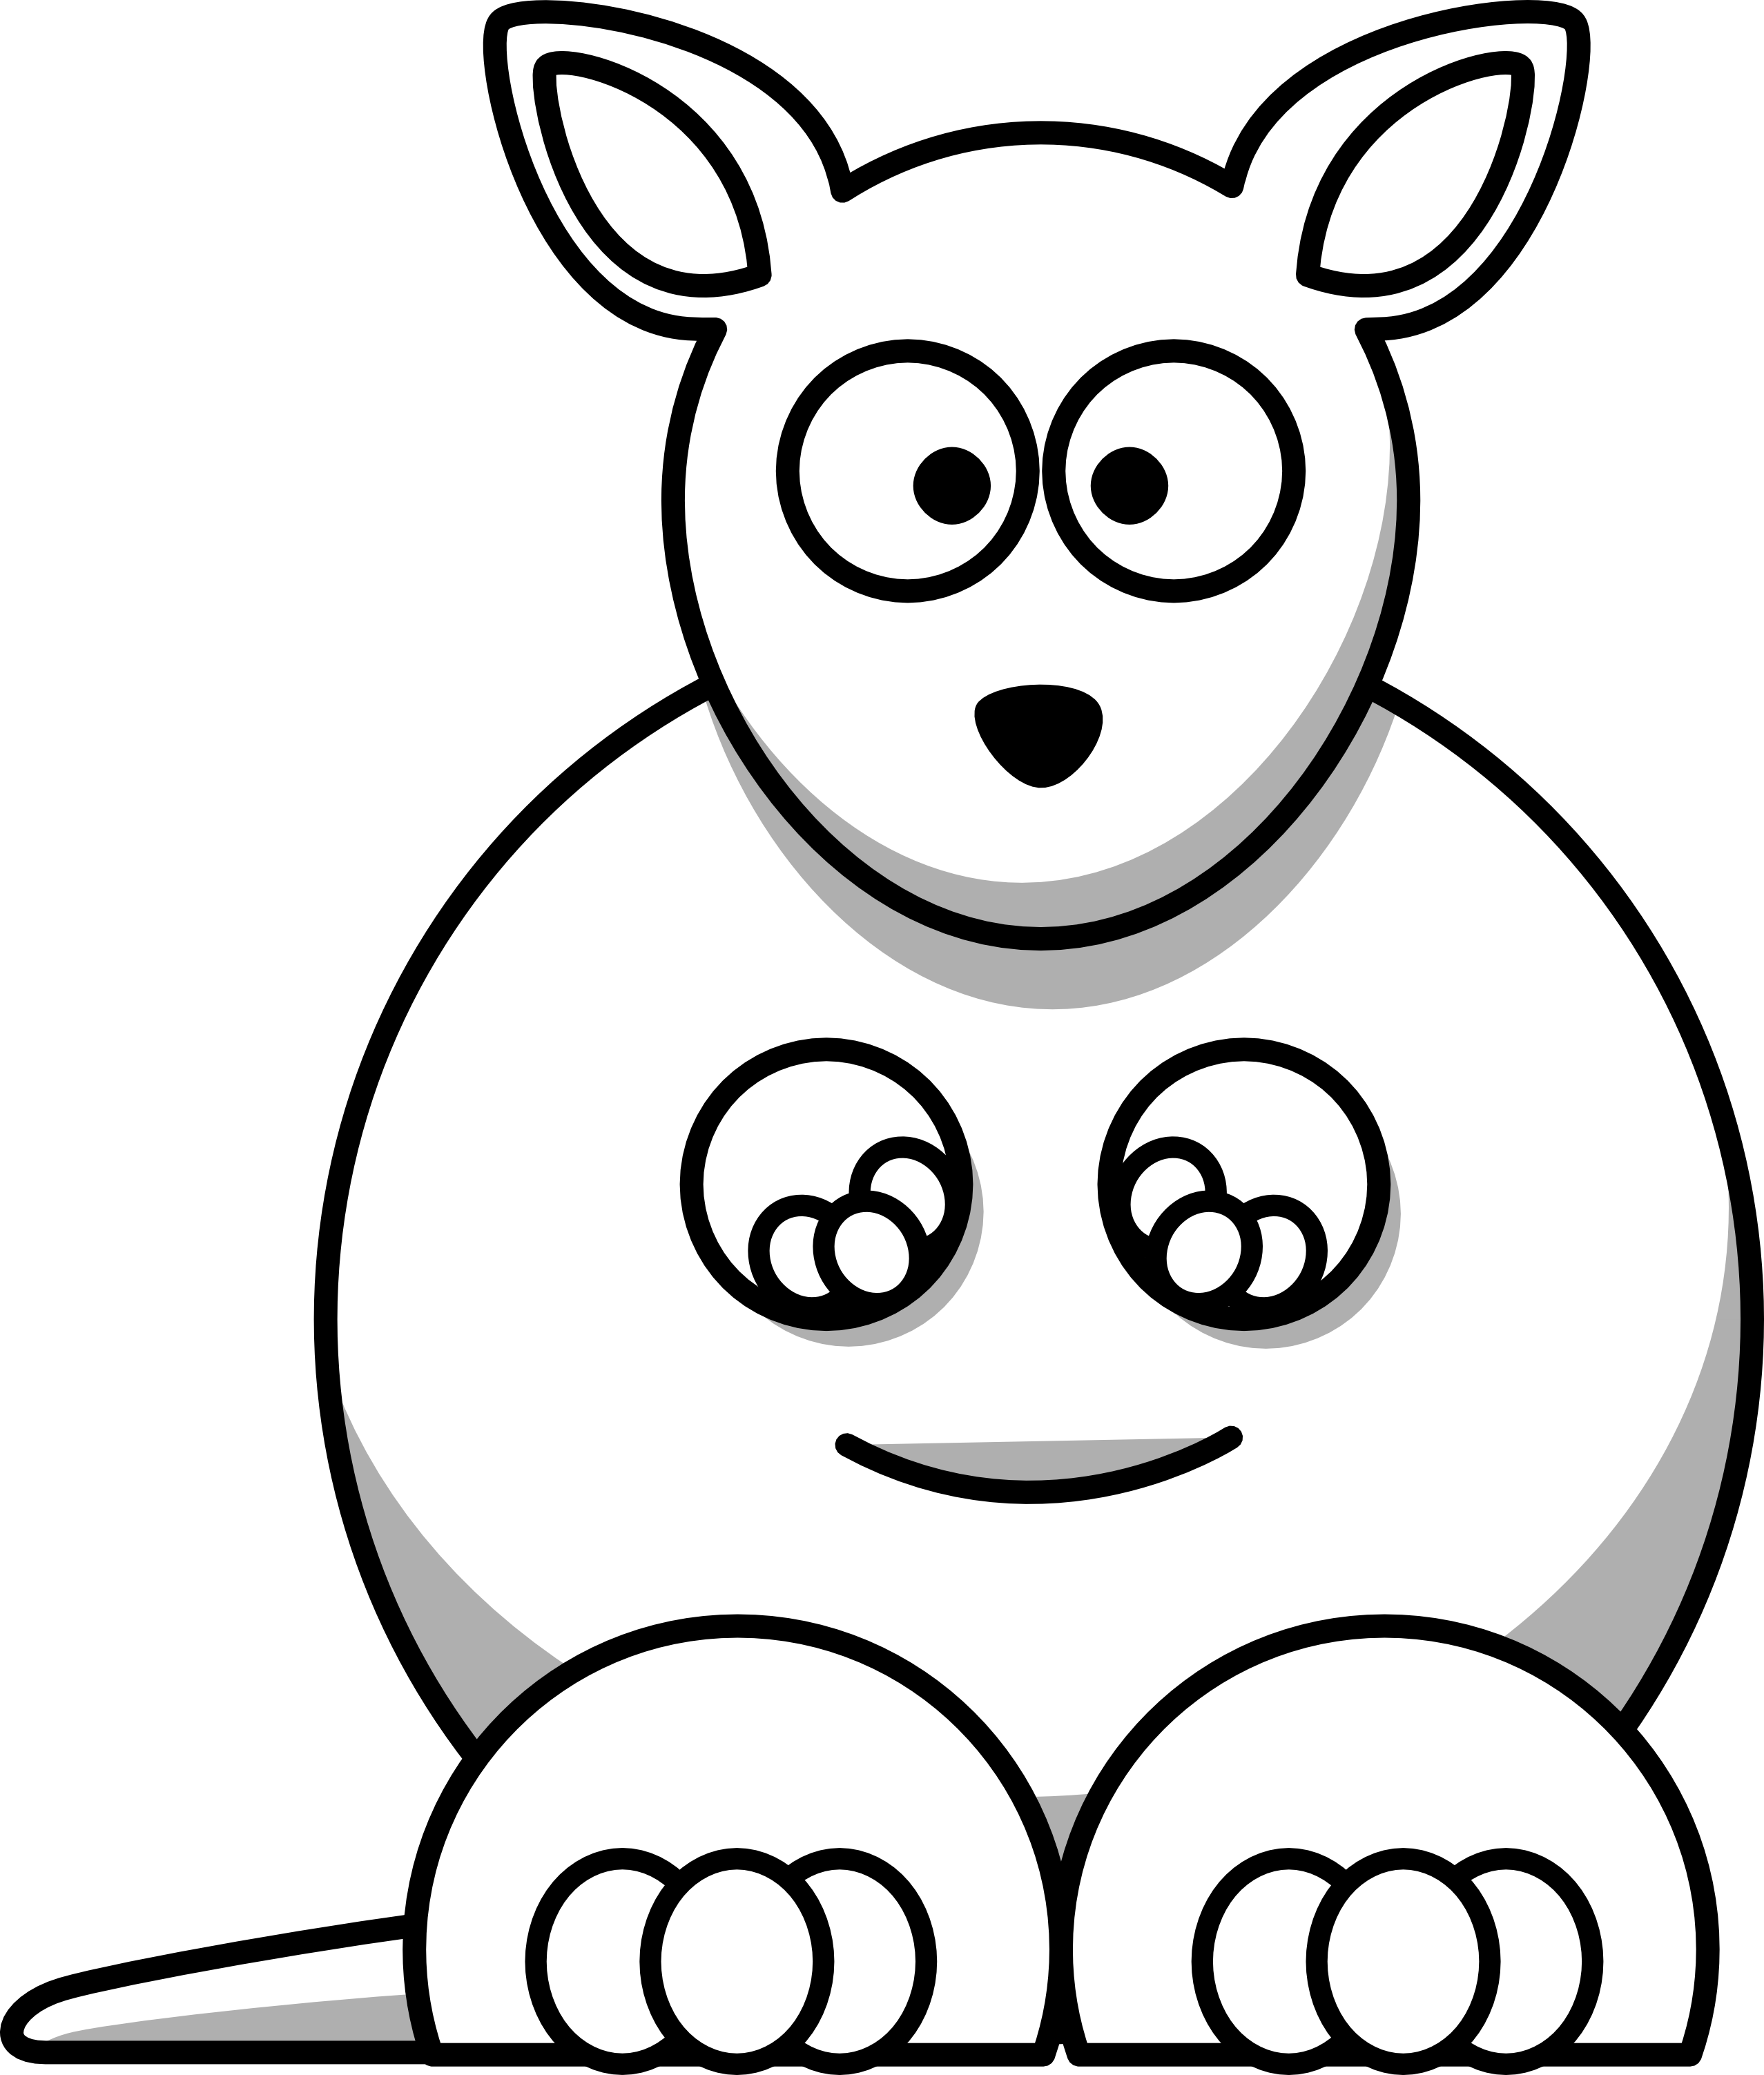 image free library Candyland clipart black and white. Picture of cartoon animals.